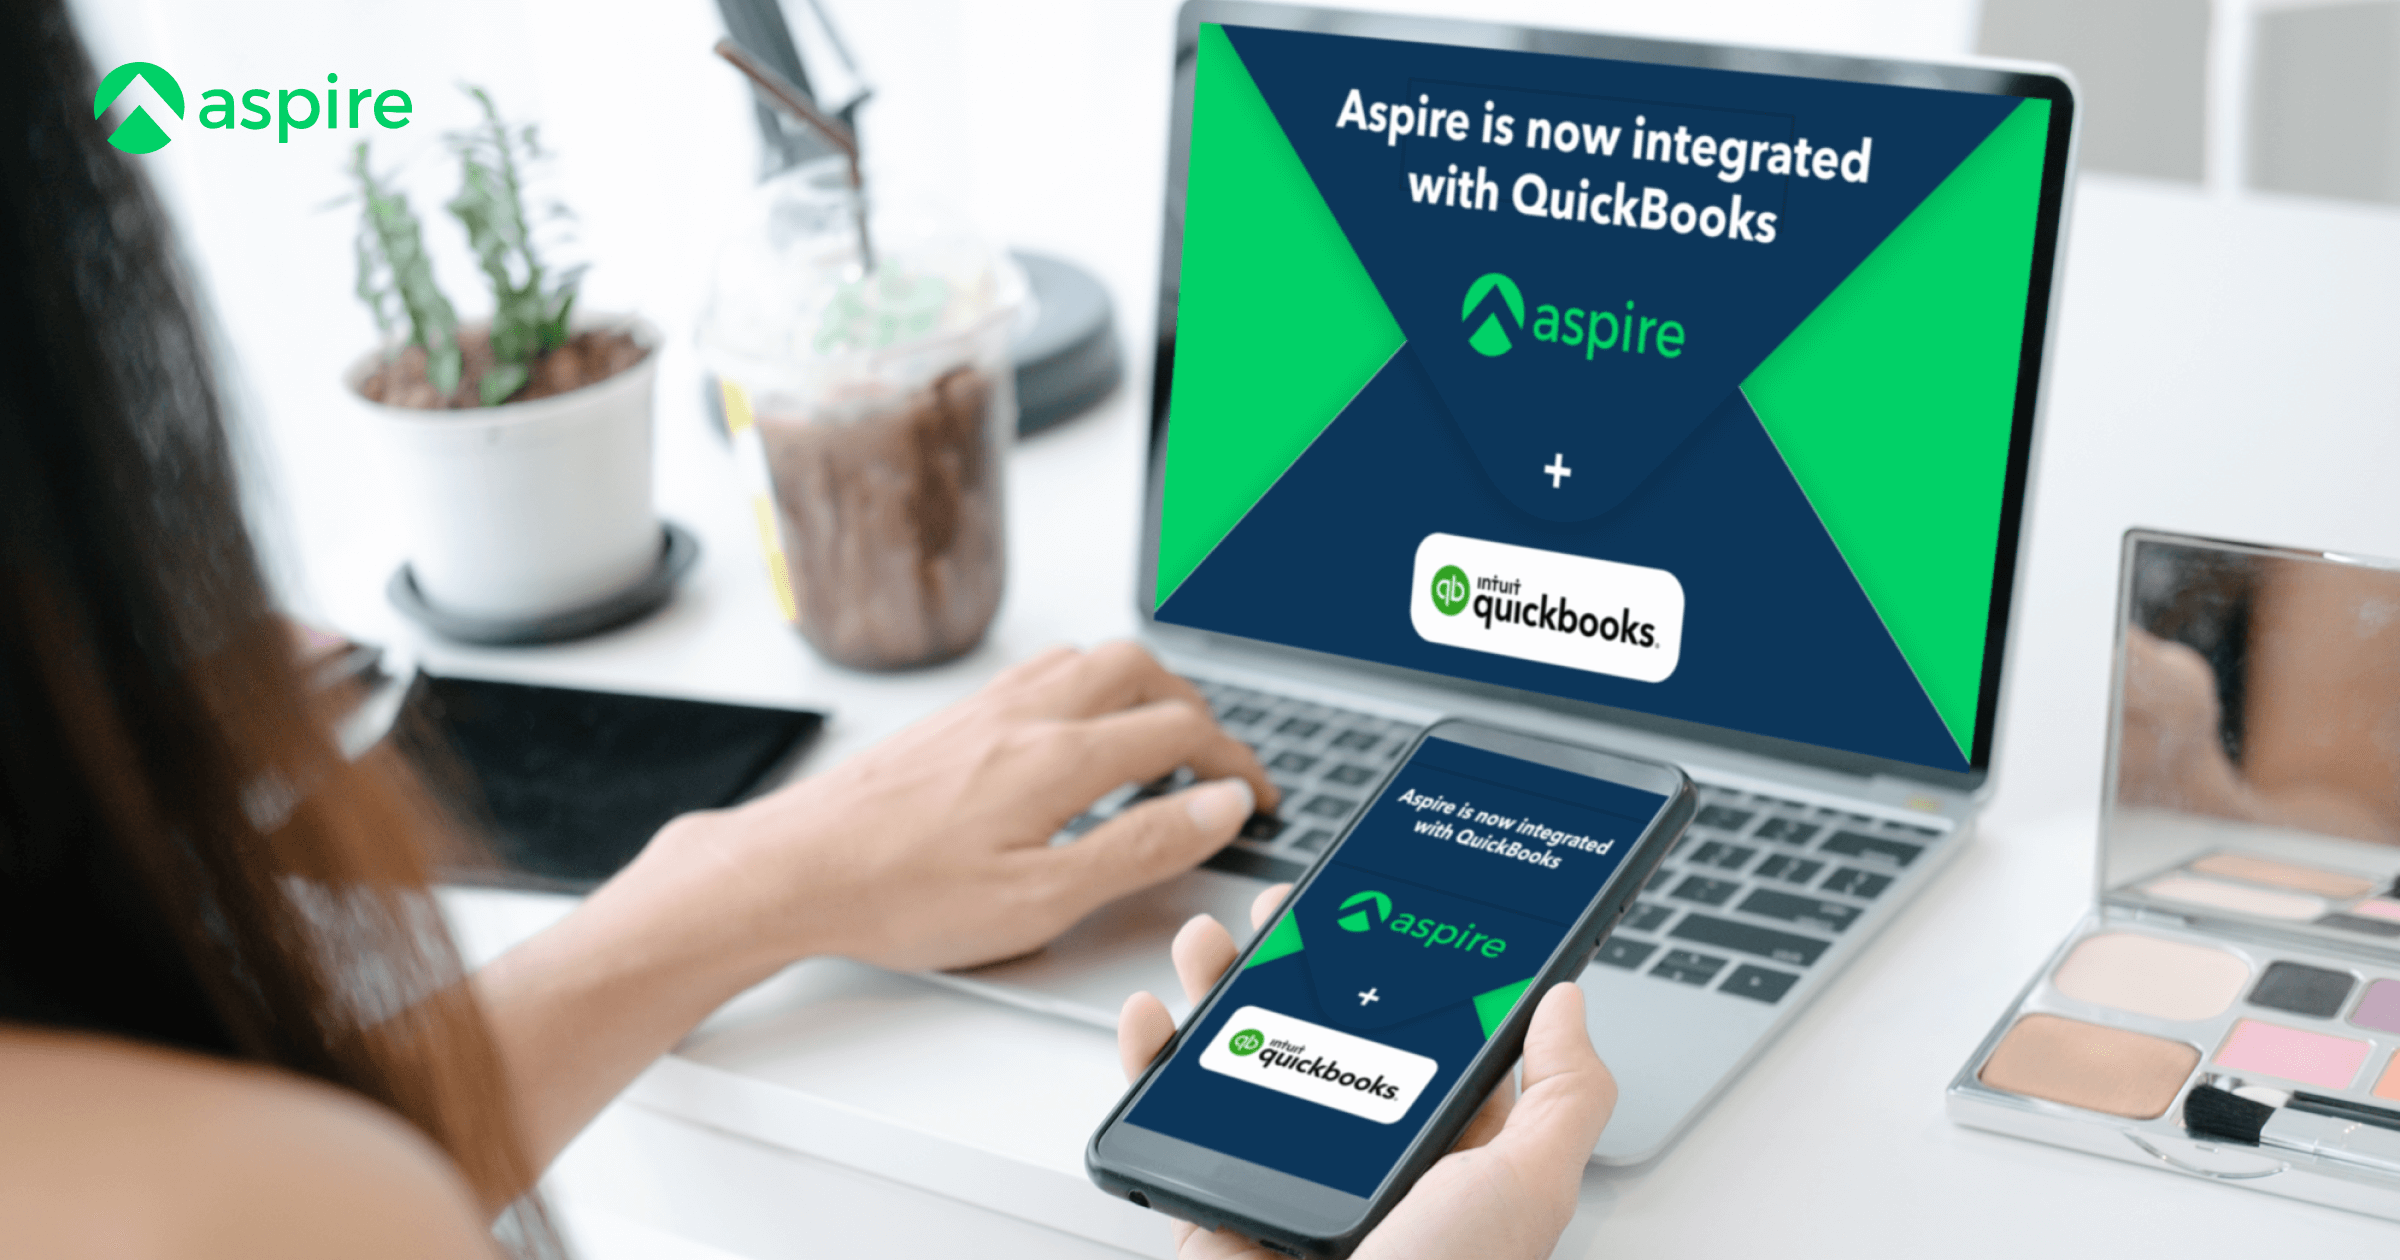 One for the Books: Introducing Aspire's Latest Integration with QuickBooks